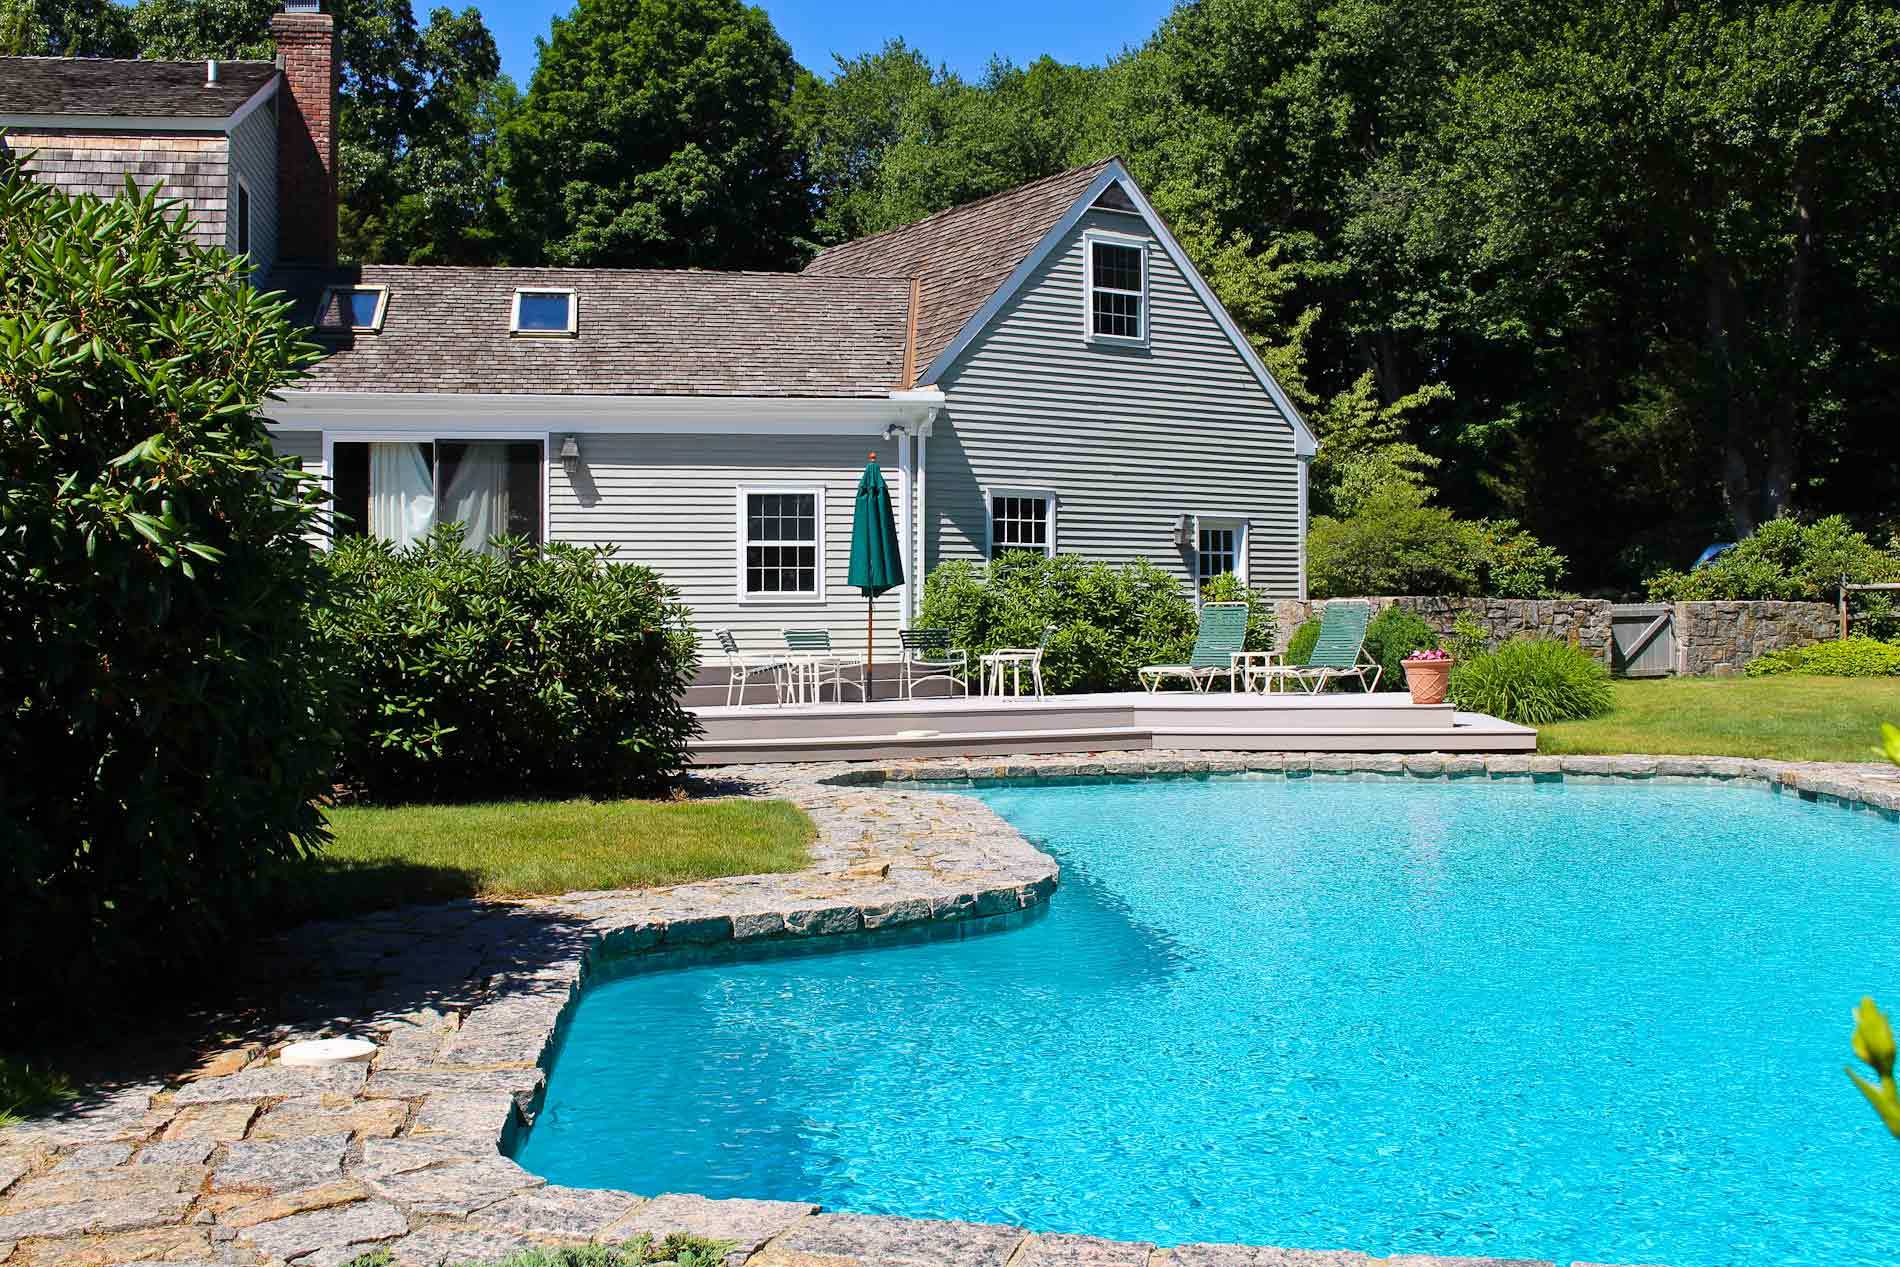 homes with swimming pool for sale in easton ct find and buy houses with pool dagny 39 s real estate